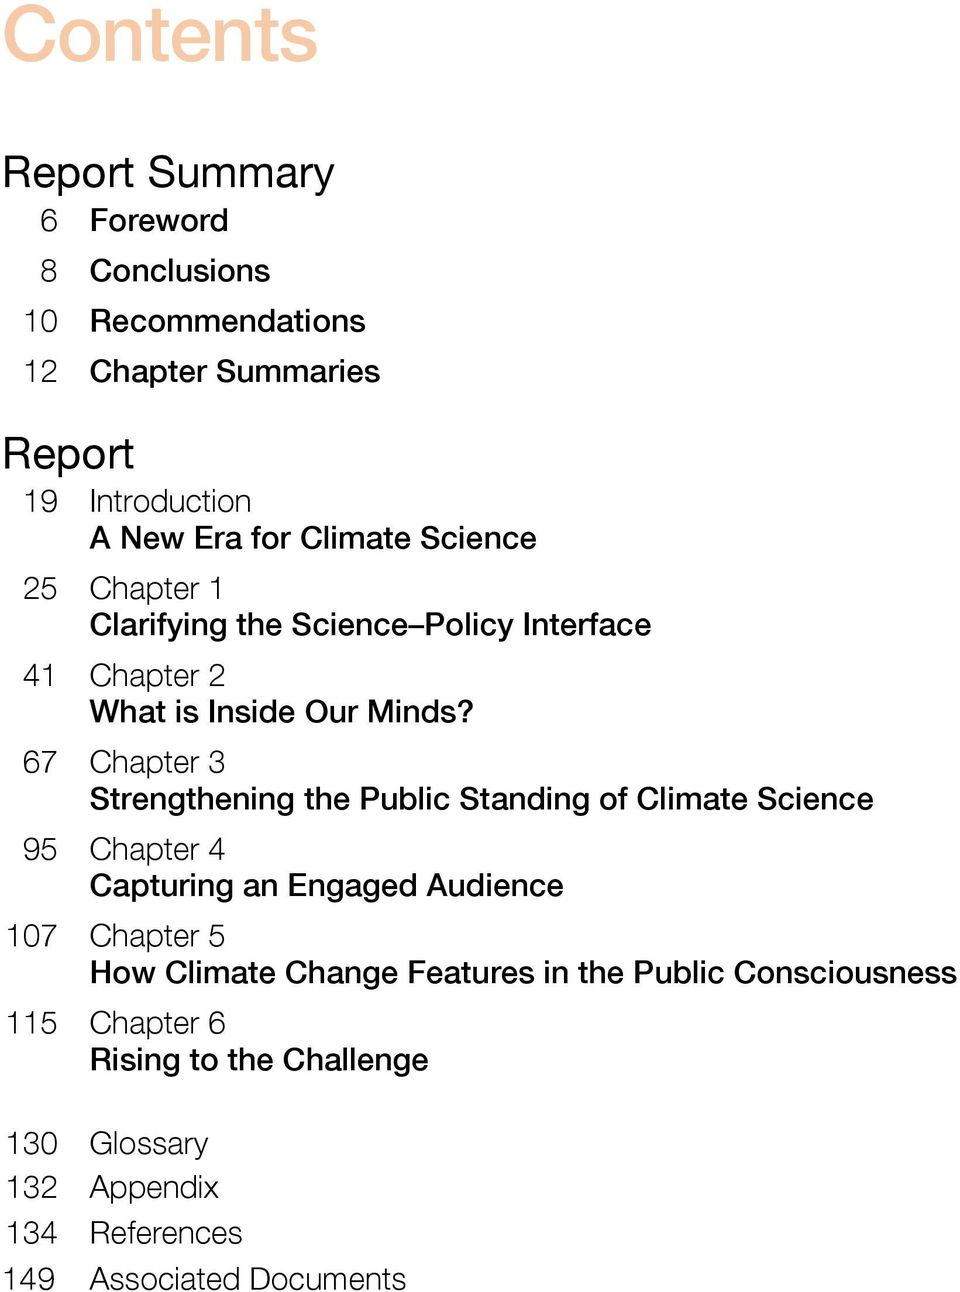 67 Chapter 3 Strengthening the Public Standing of Climate Science 95 Chapter 4 Capturing an Engaged Audience 107 Chapter 5 How